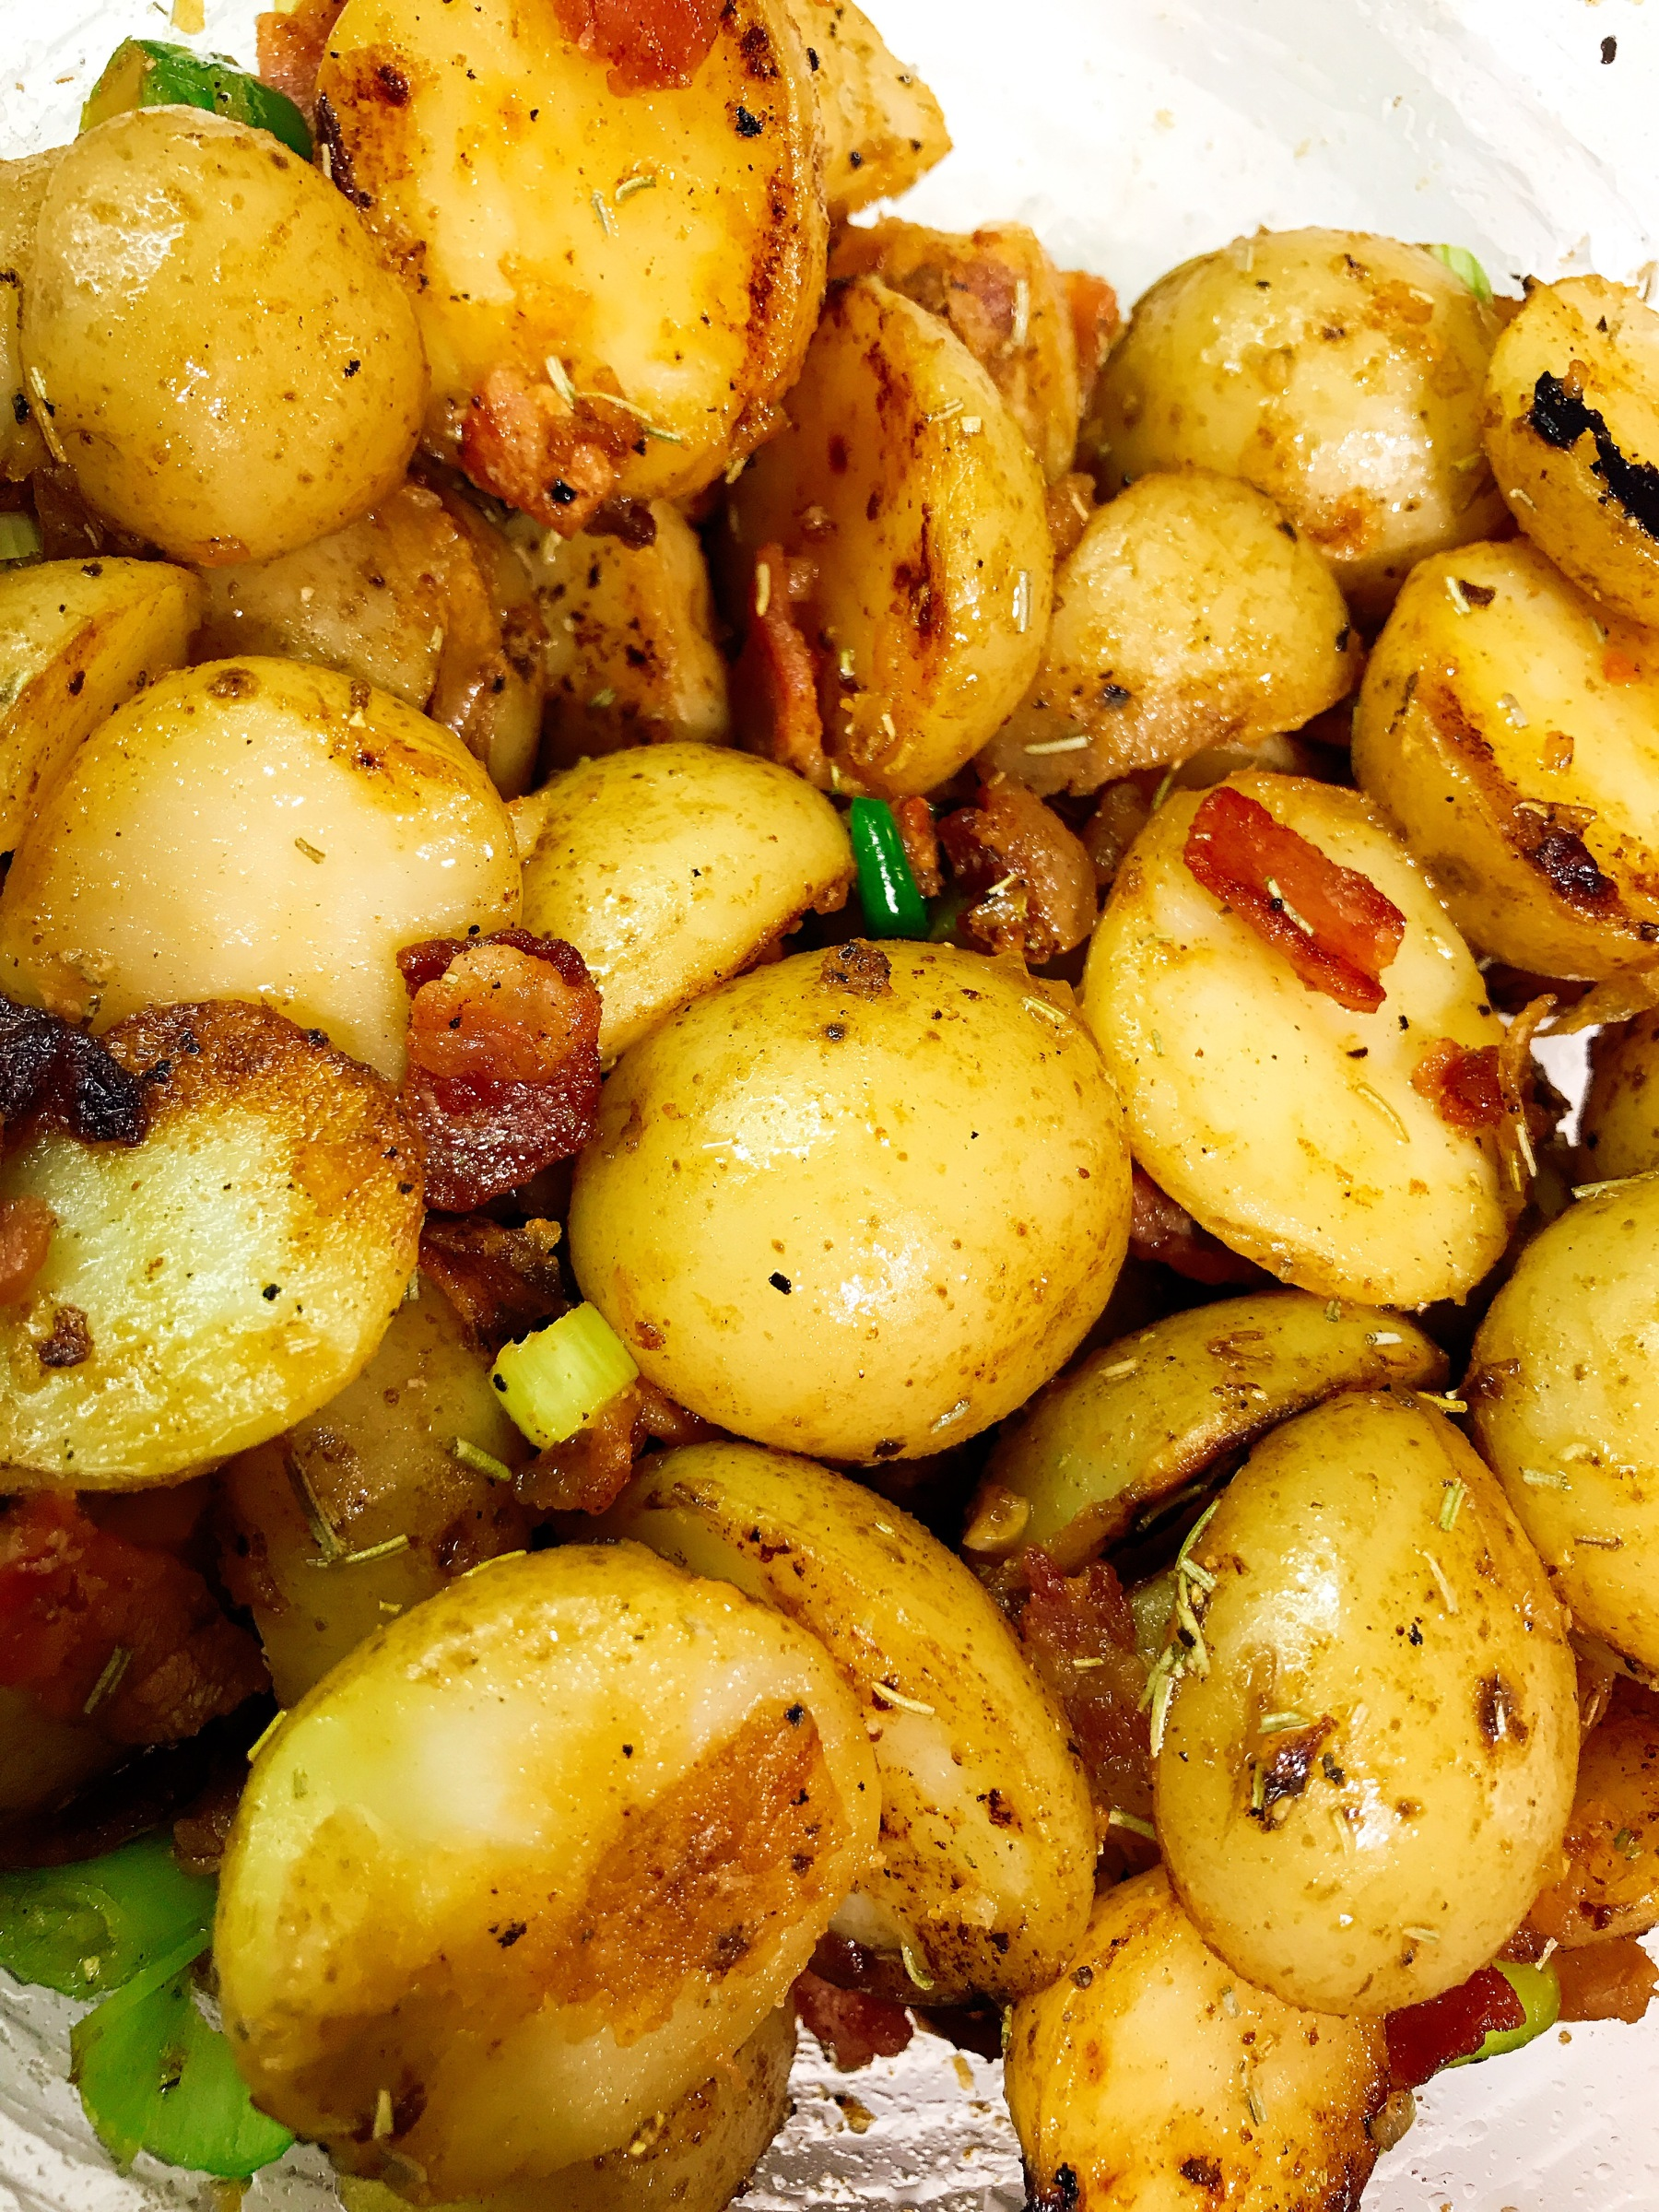 Potato and Candied Bacon salad